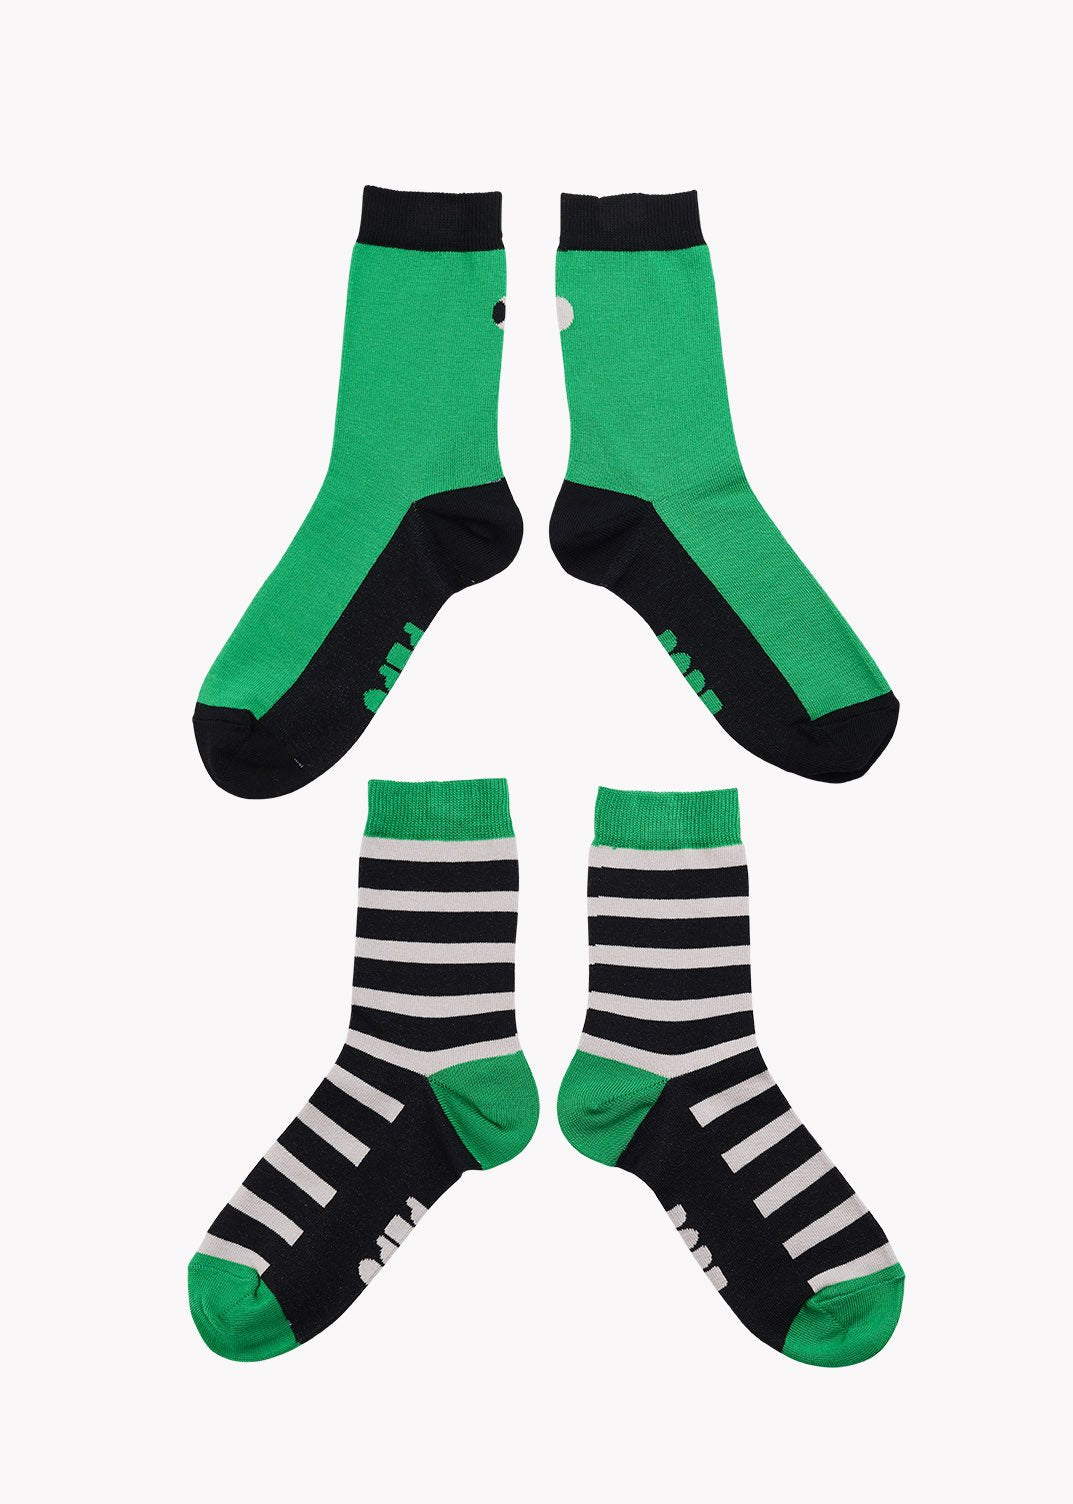 SOCKS, Double Pack, Green/Black/Grey, Adults